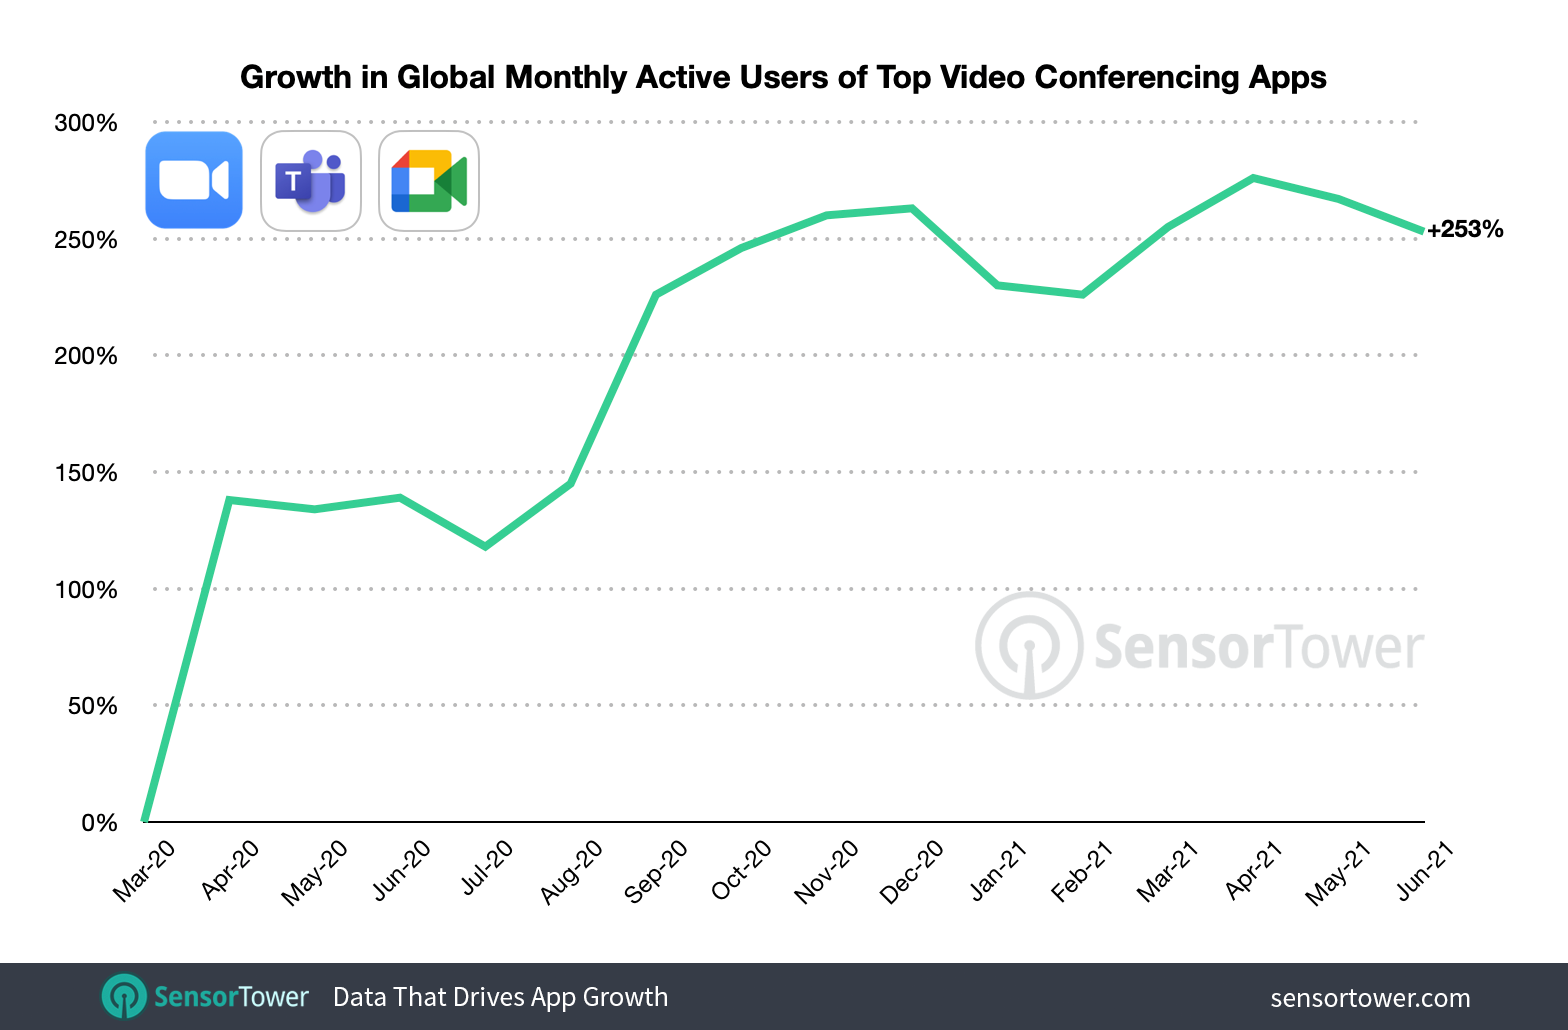 June 2021's monthly active users for Zoom, Microsoft Teams, and Google Meet were 2.5 times higher when indexed against March 2020